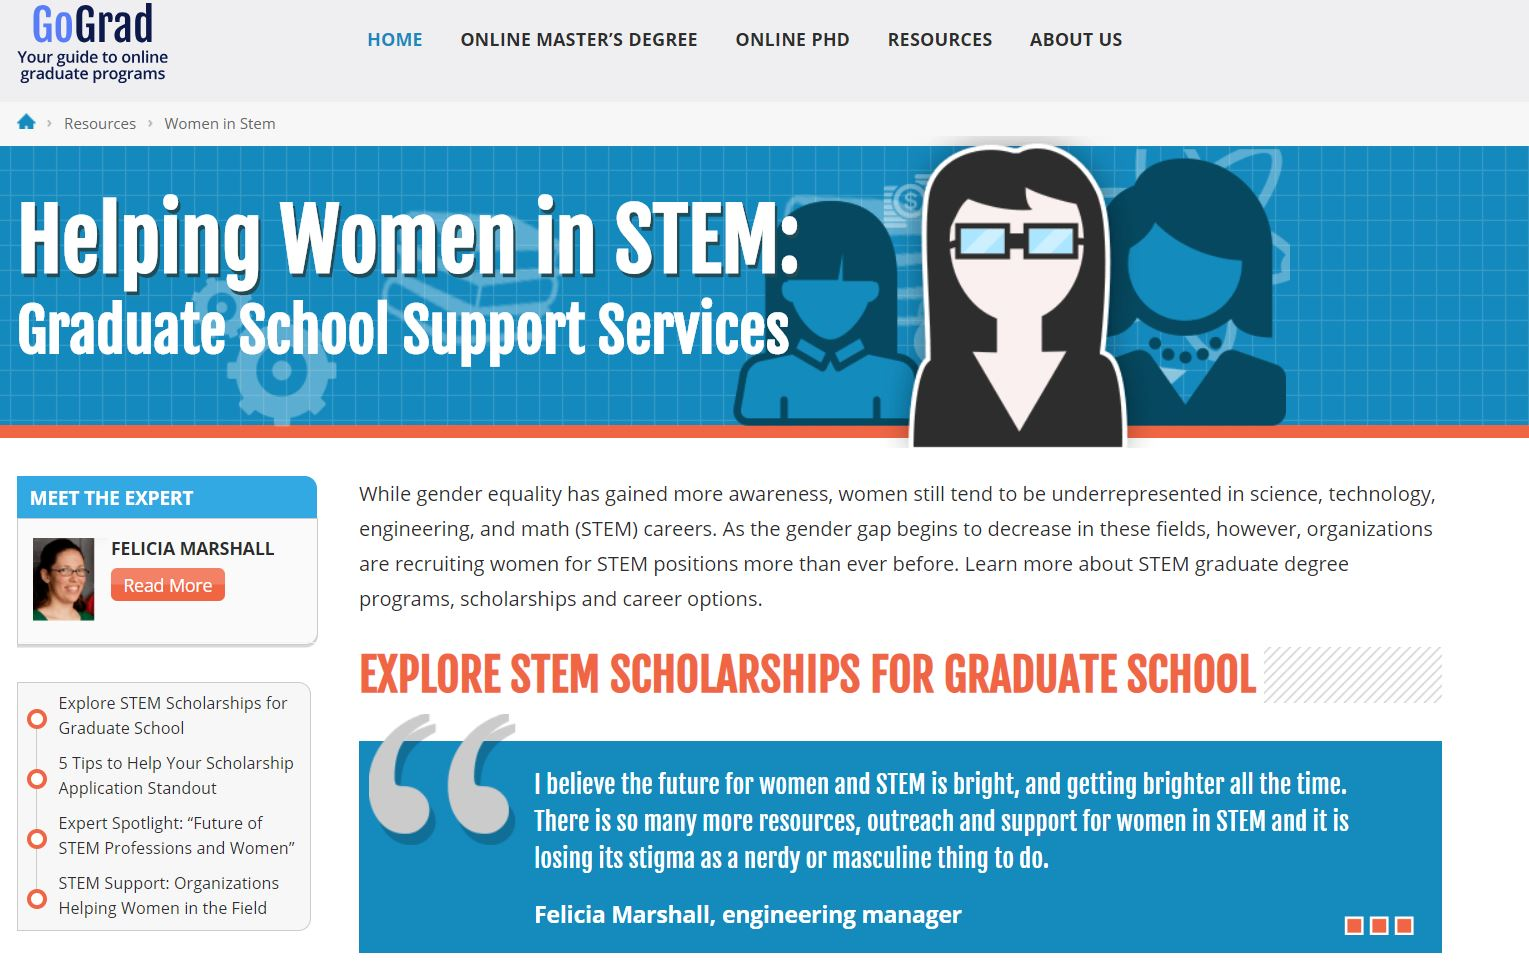 Graduate Resources for Women in STEM